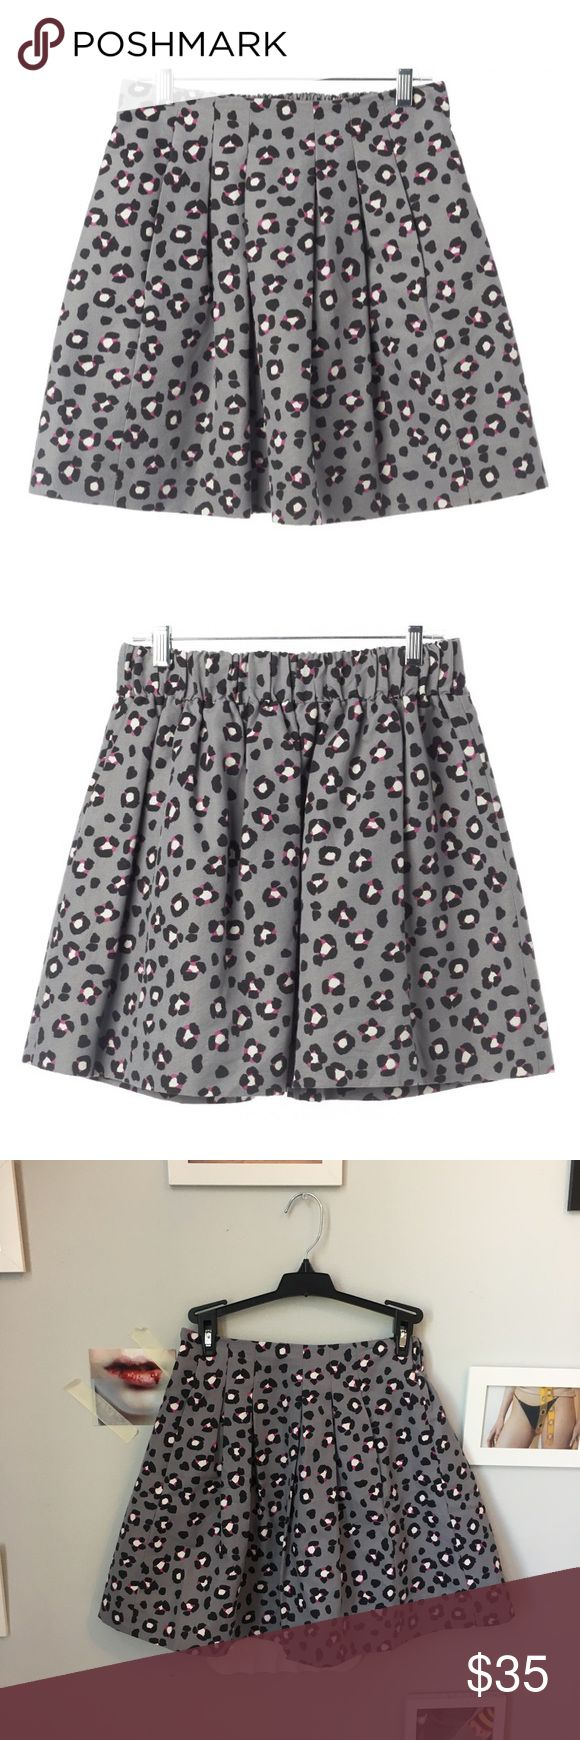 "Kate Spade Gray Cheetah Print Skirt kate spade cheetah print skirt • size 0, elastic stretch waist • features soft pleats with two hidden pockets at the waistband • length is 16.25"" • waist measures 12.5"" laying flat, can comfortably fit a 25-27 • fully lined • 77% cotton / 23% polyester  ✨ please note - you will be blocked if you offer anything more than 20% off the listed price, most prices are firm unless otherwise noted - thank you ✨ kate spade Skirts Mini"